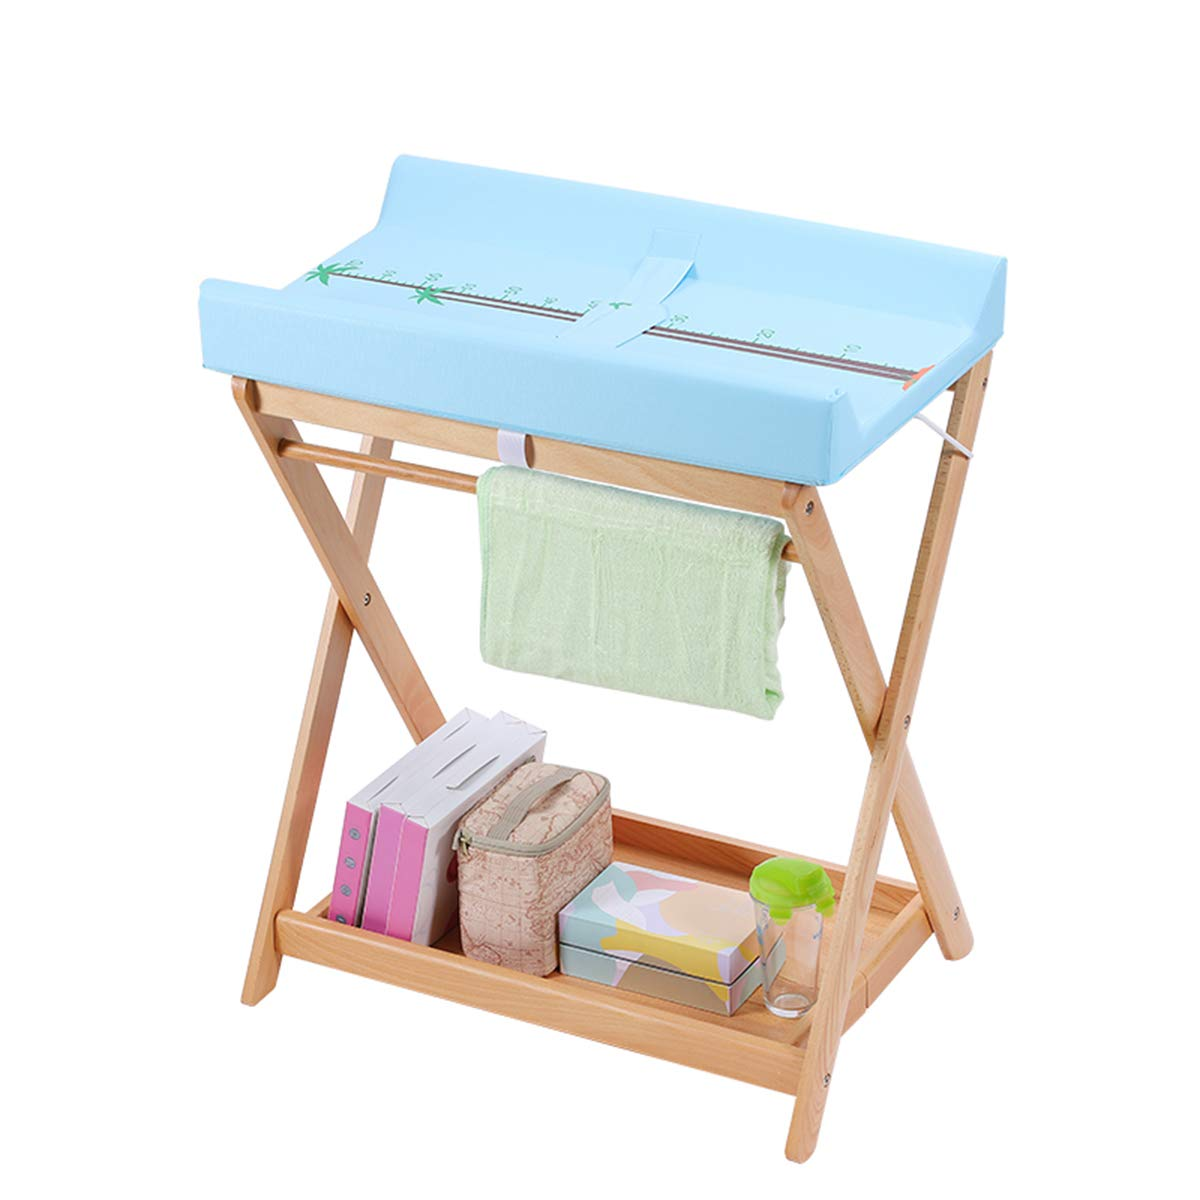 Change Diaper Table, Solid Wood Baby Care Table, Multi-Functional Storage Foldable Baby Diaper Table, Portable Baby Change Clothes Rack 78cm